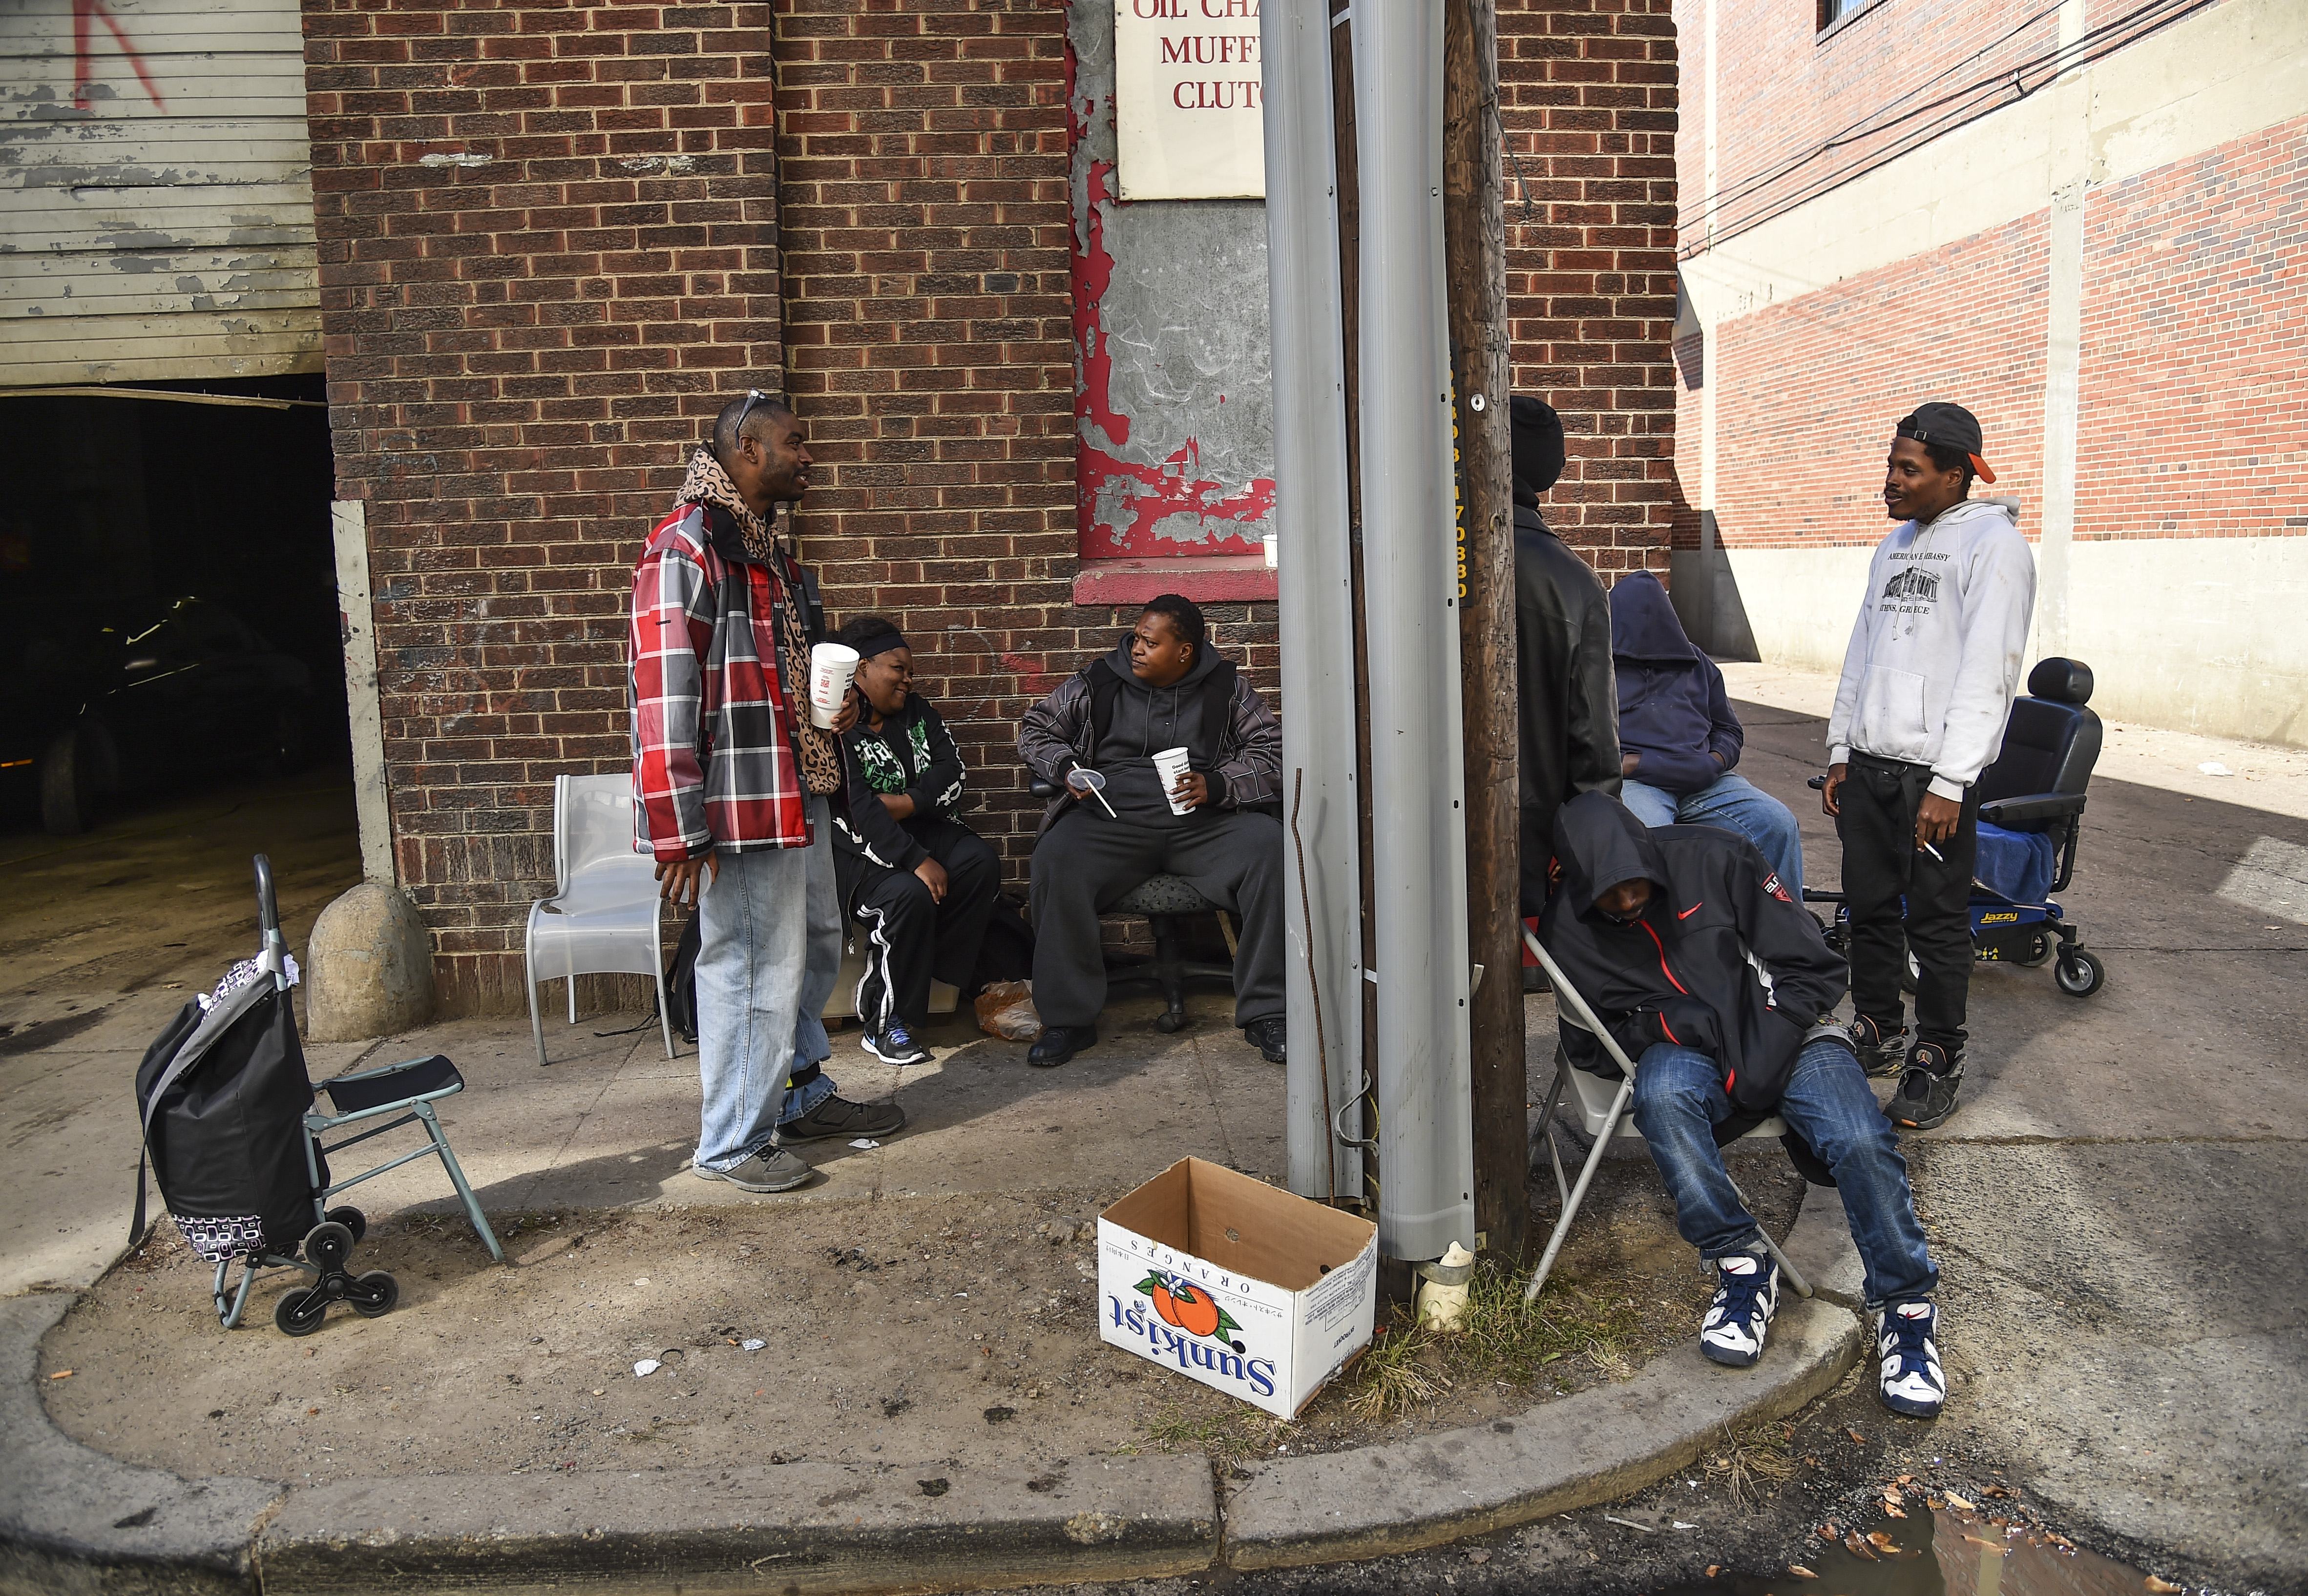 Members of a homeless community hang out on the sidewalk in the Ivy City neighborhood in Washington, D.C., on Oct. 16, 2015